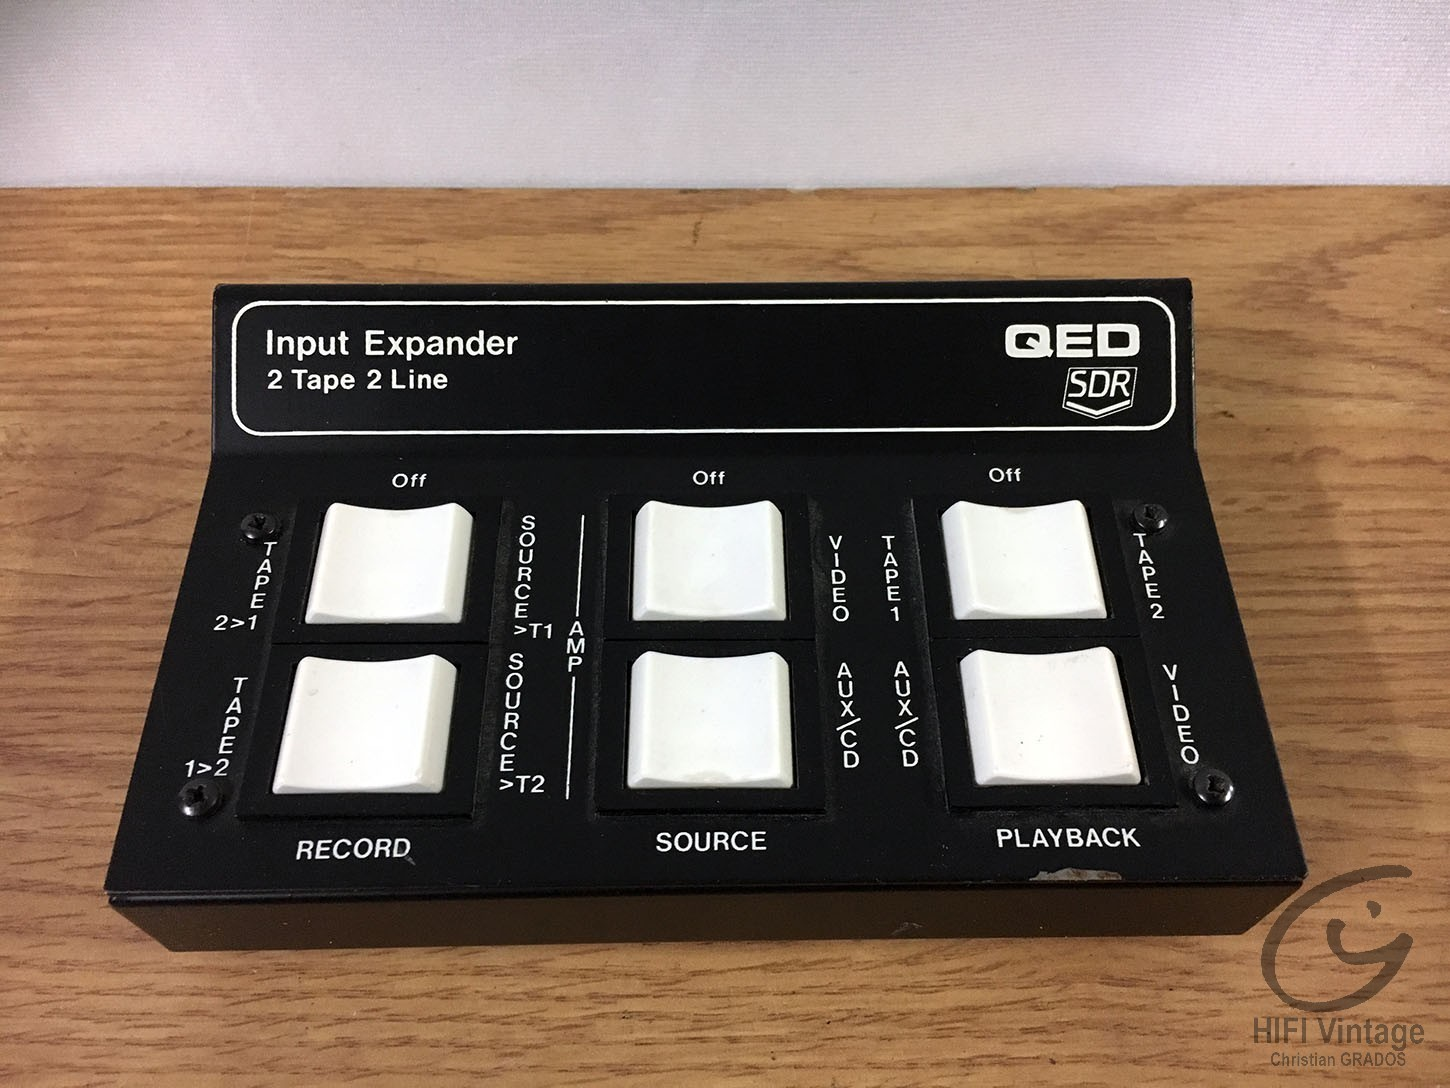 QED input expender